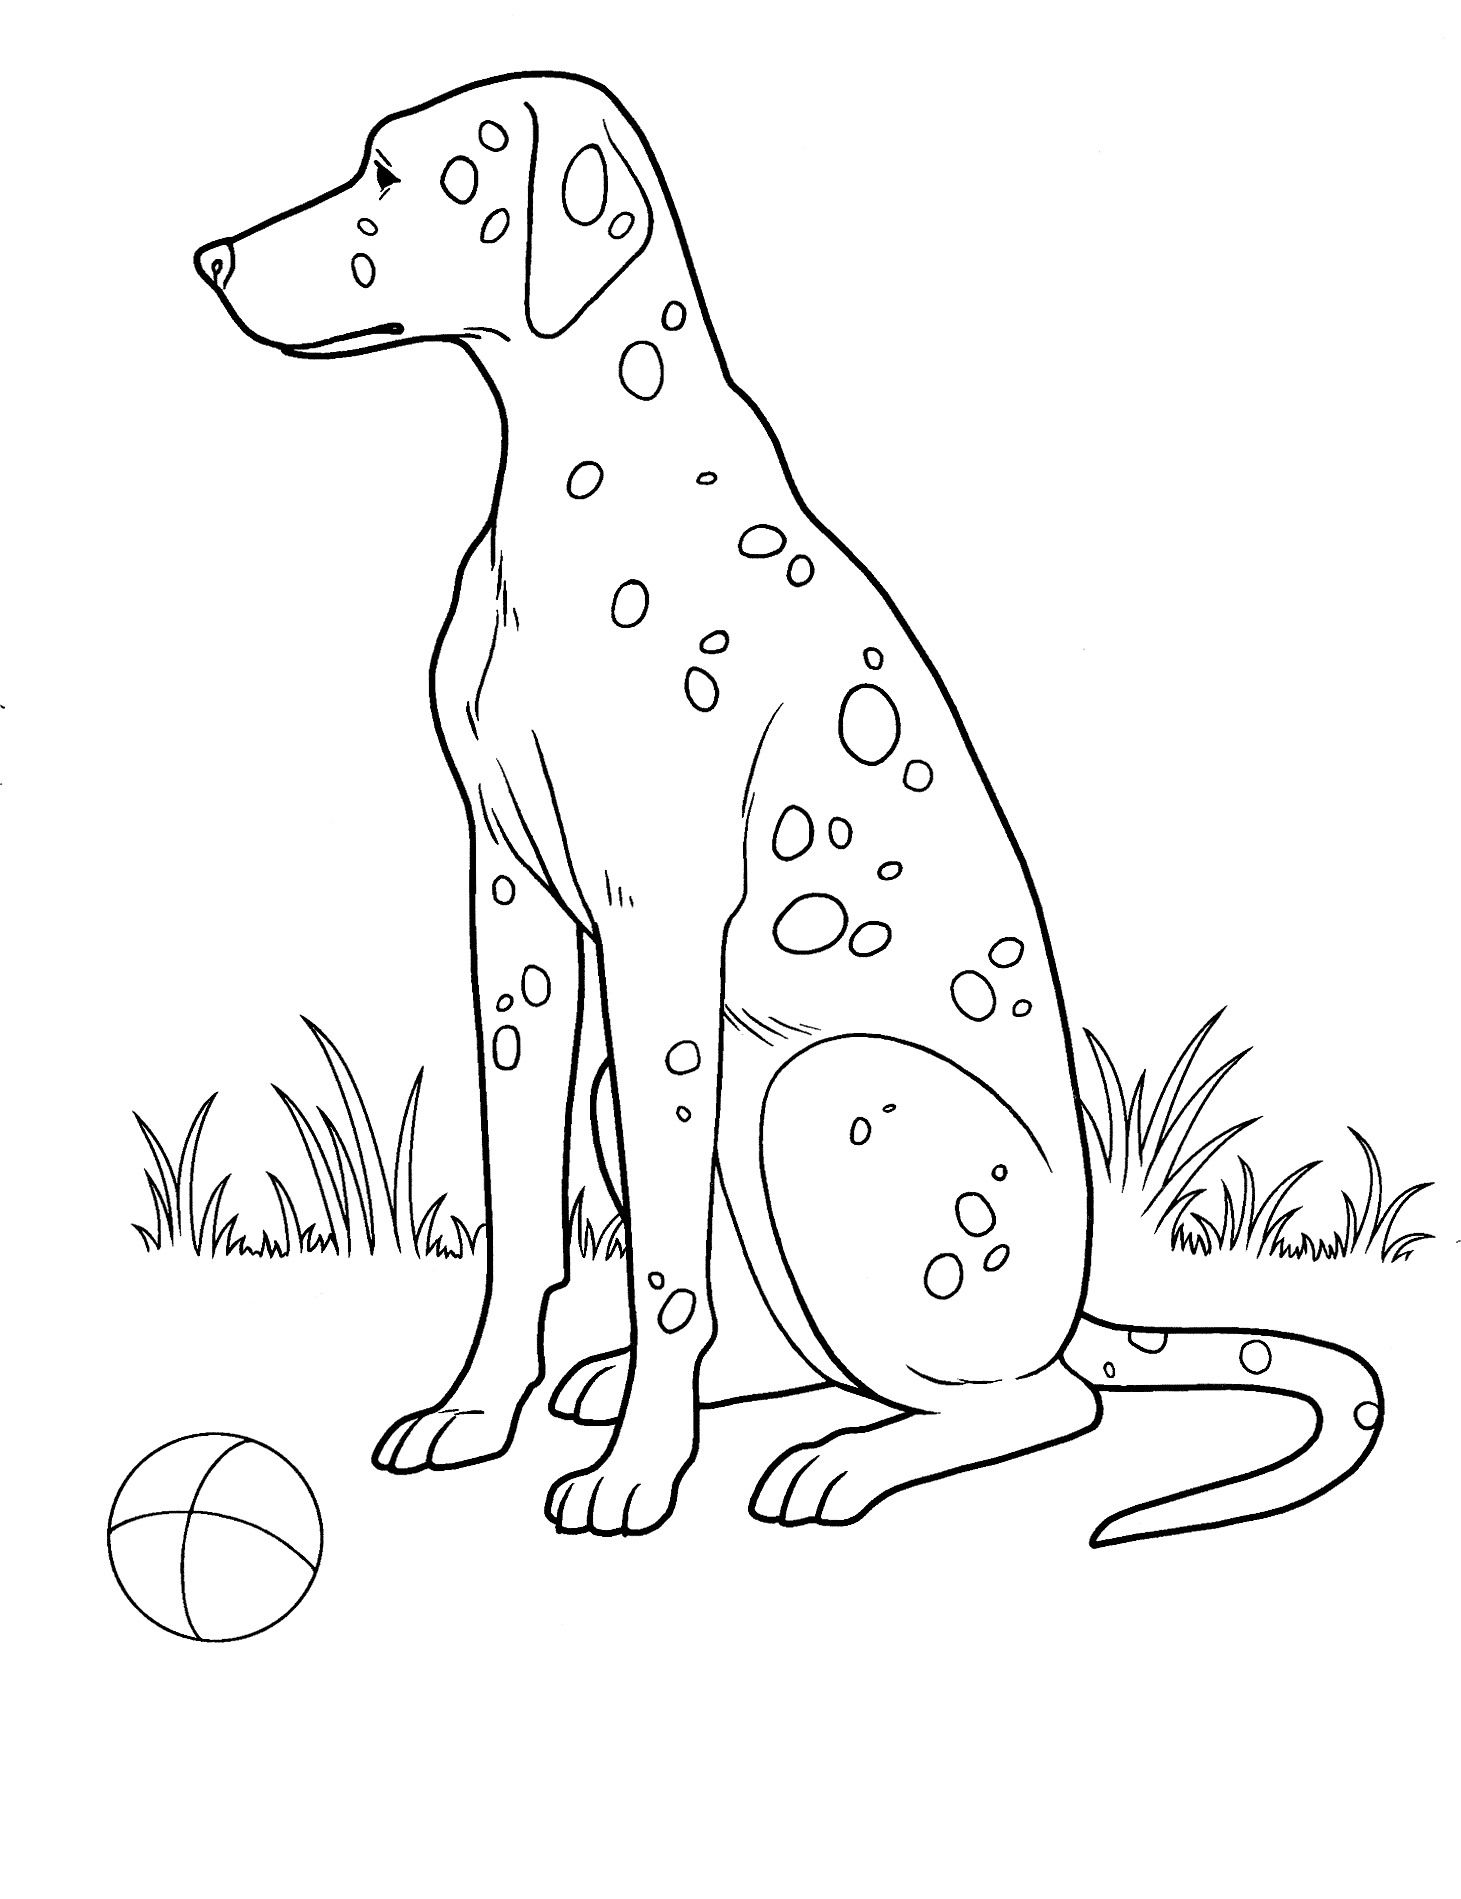 Dog Coloring Pages 27 Teenagers Coloring Pages Dog Coloring Page